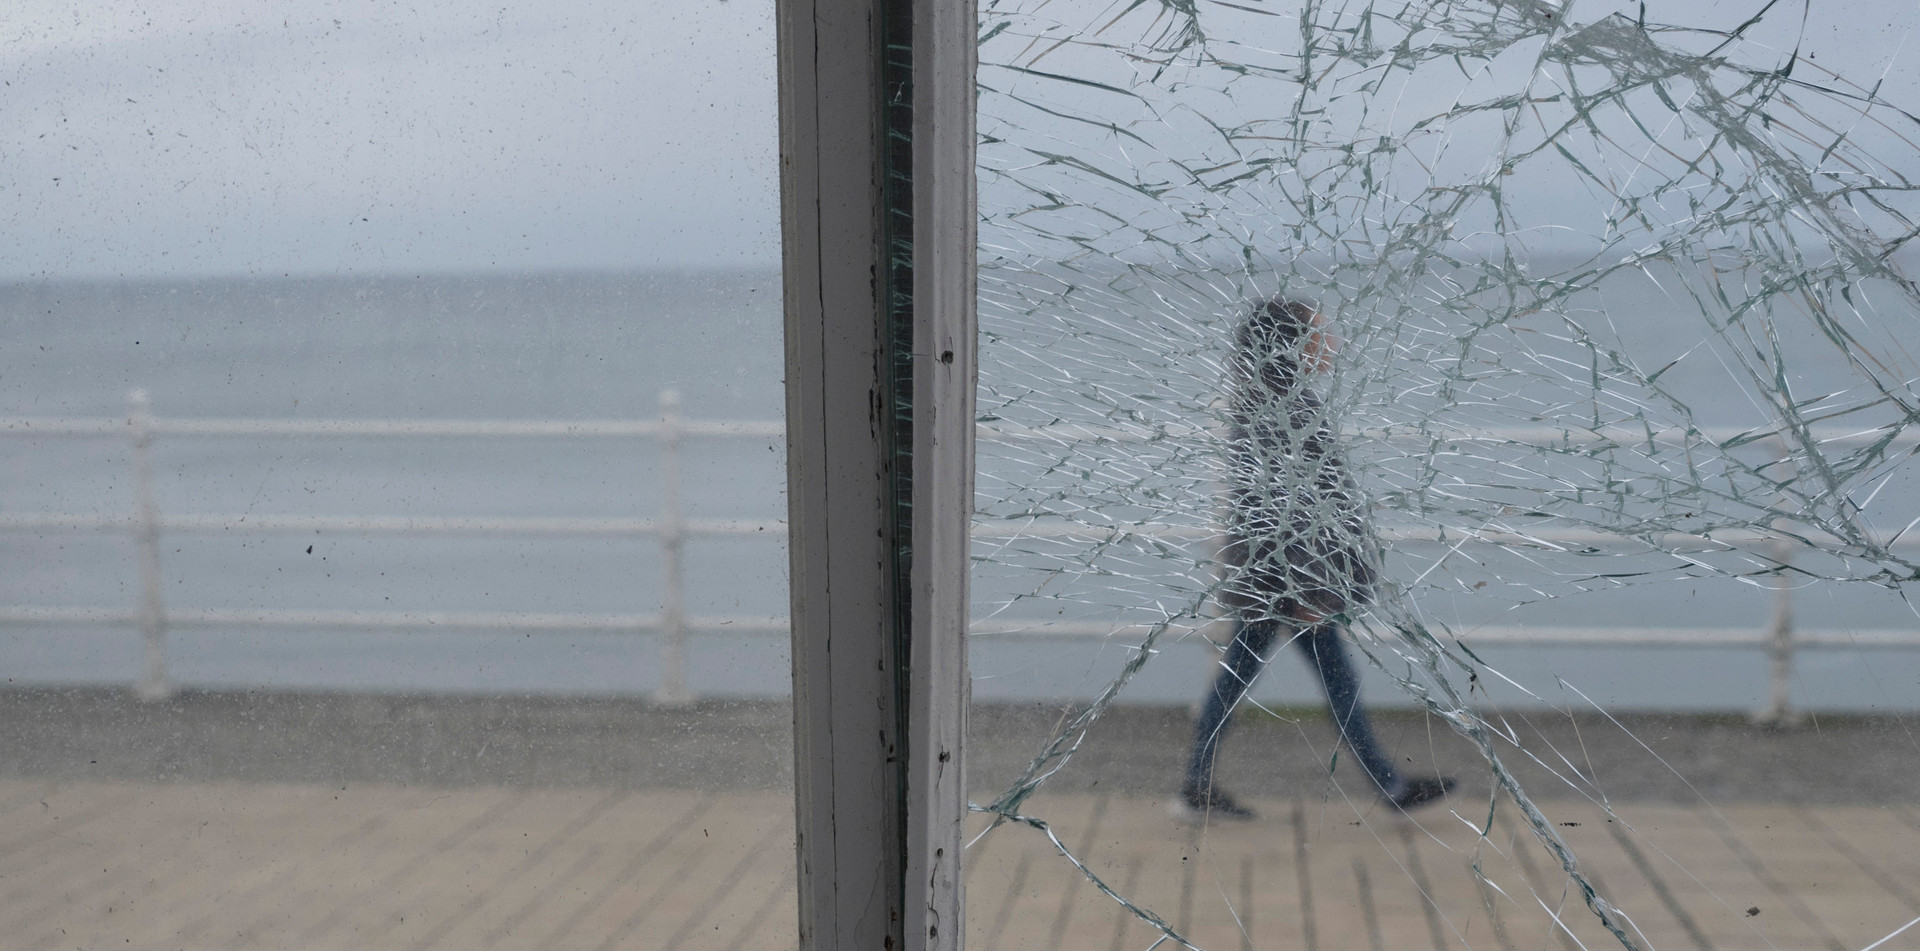 Walking in self-isolation by the seaside